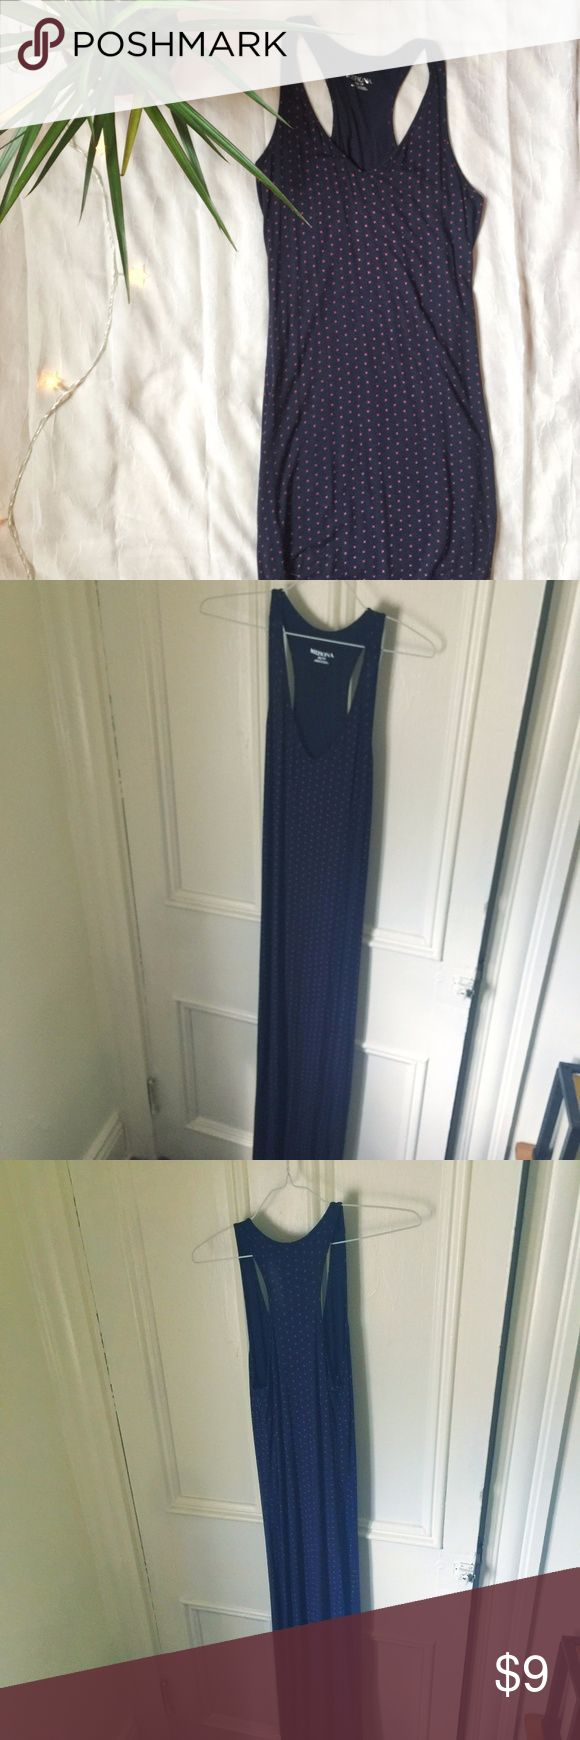 Merona blue ankle-length maxi dress Size small/petite, this curve-hugging dress is size XS and is navy blue with small red crosses. Perfect condition. Merona Dresses Maxi